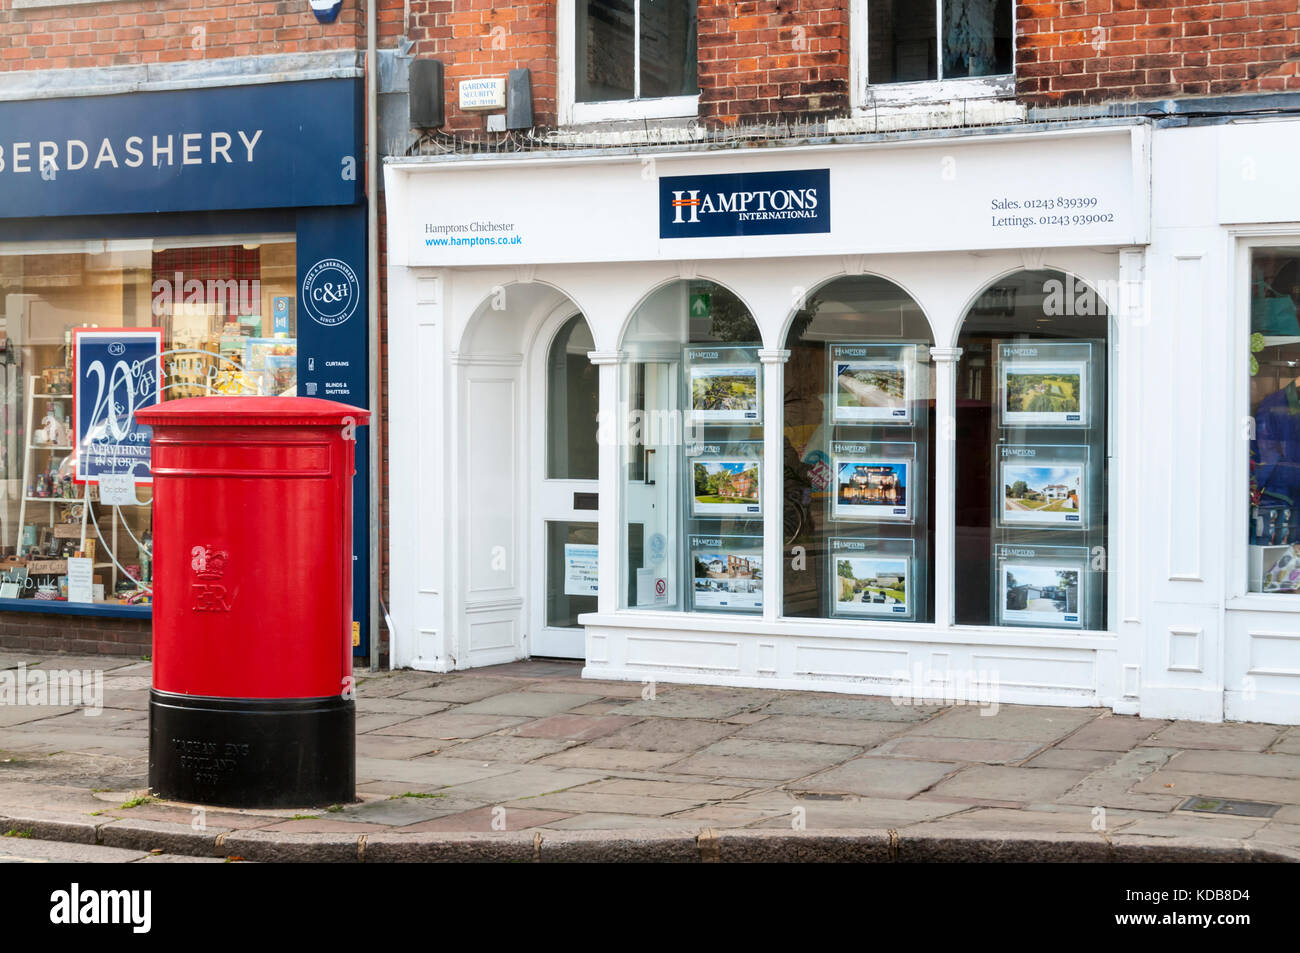 A branch of Hamptons International residential estate agents in Chichester. - Stock Image